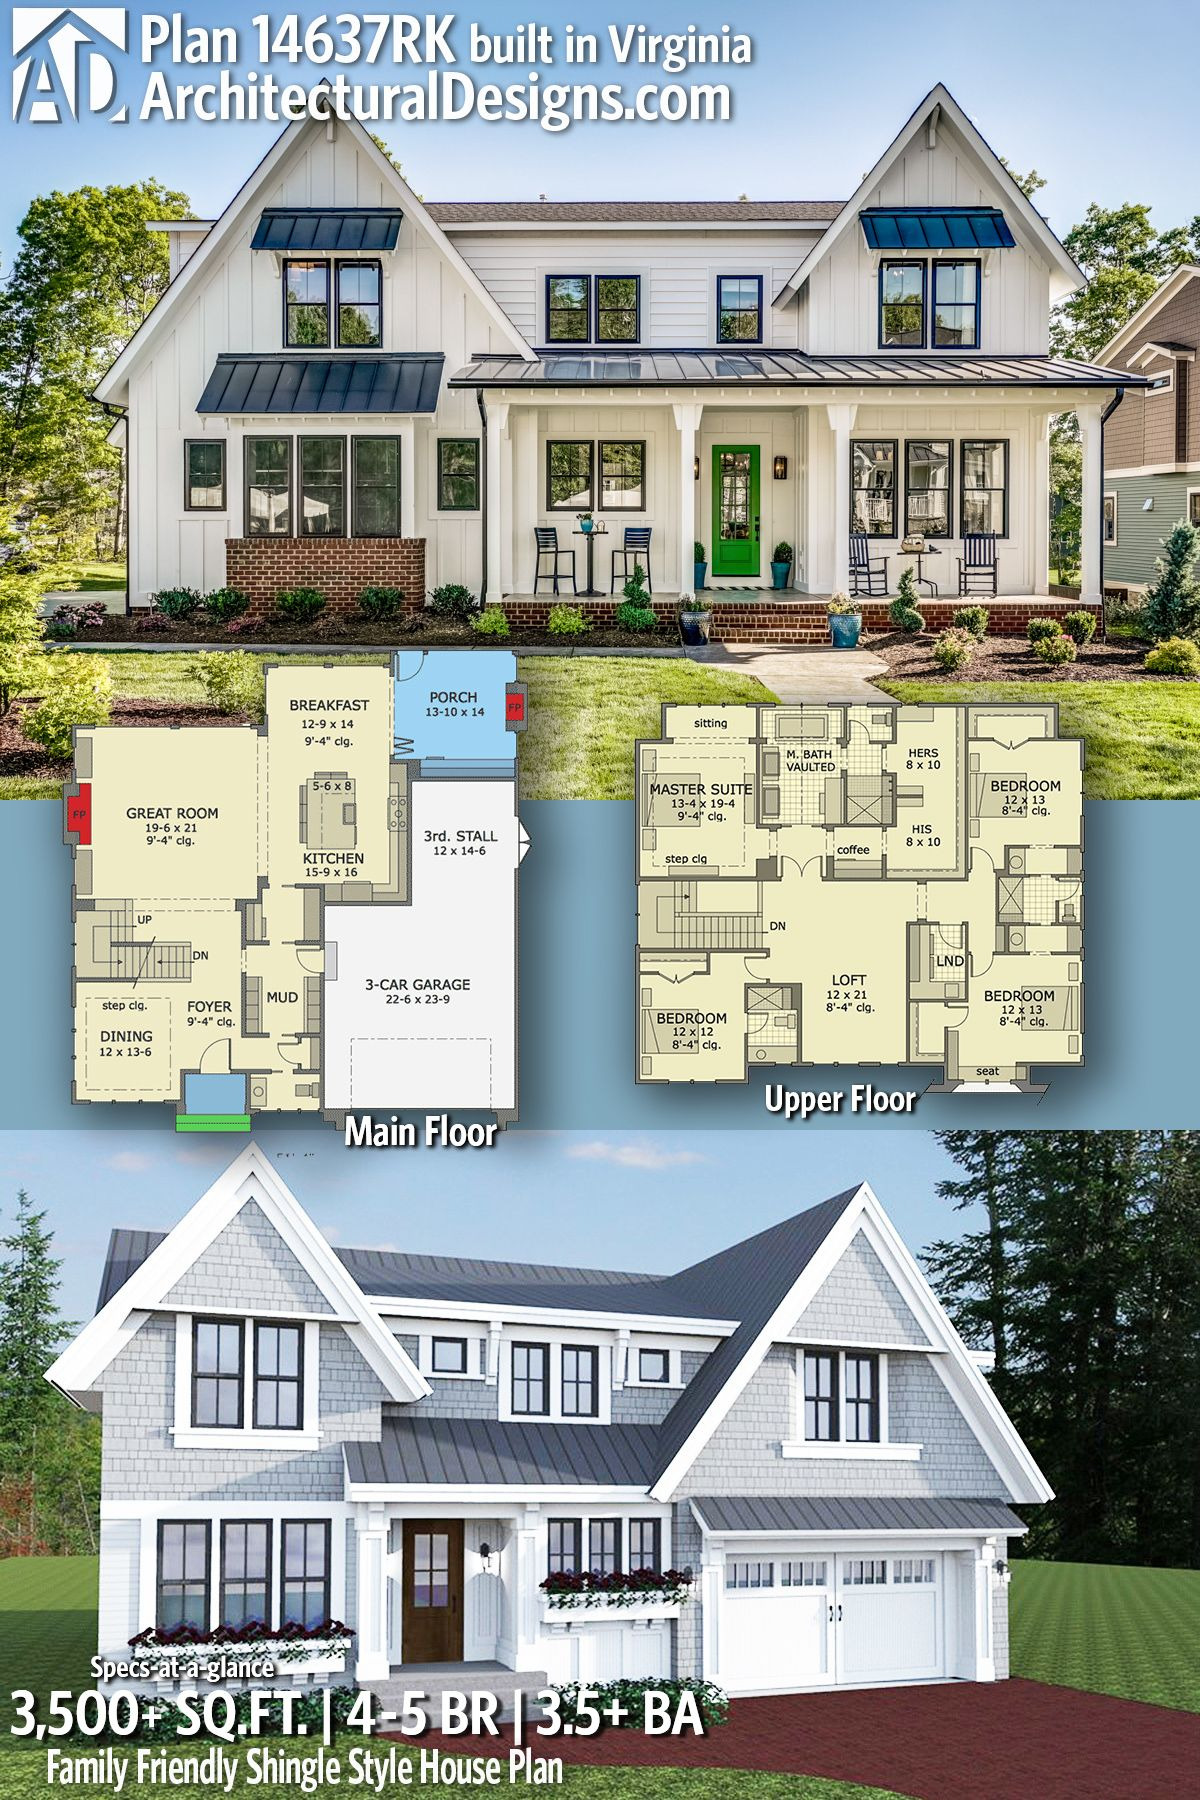 Architectural Design House Plans Awesome Plan Rk Family Friendly Shingle Style House Plan